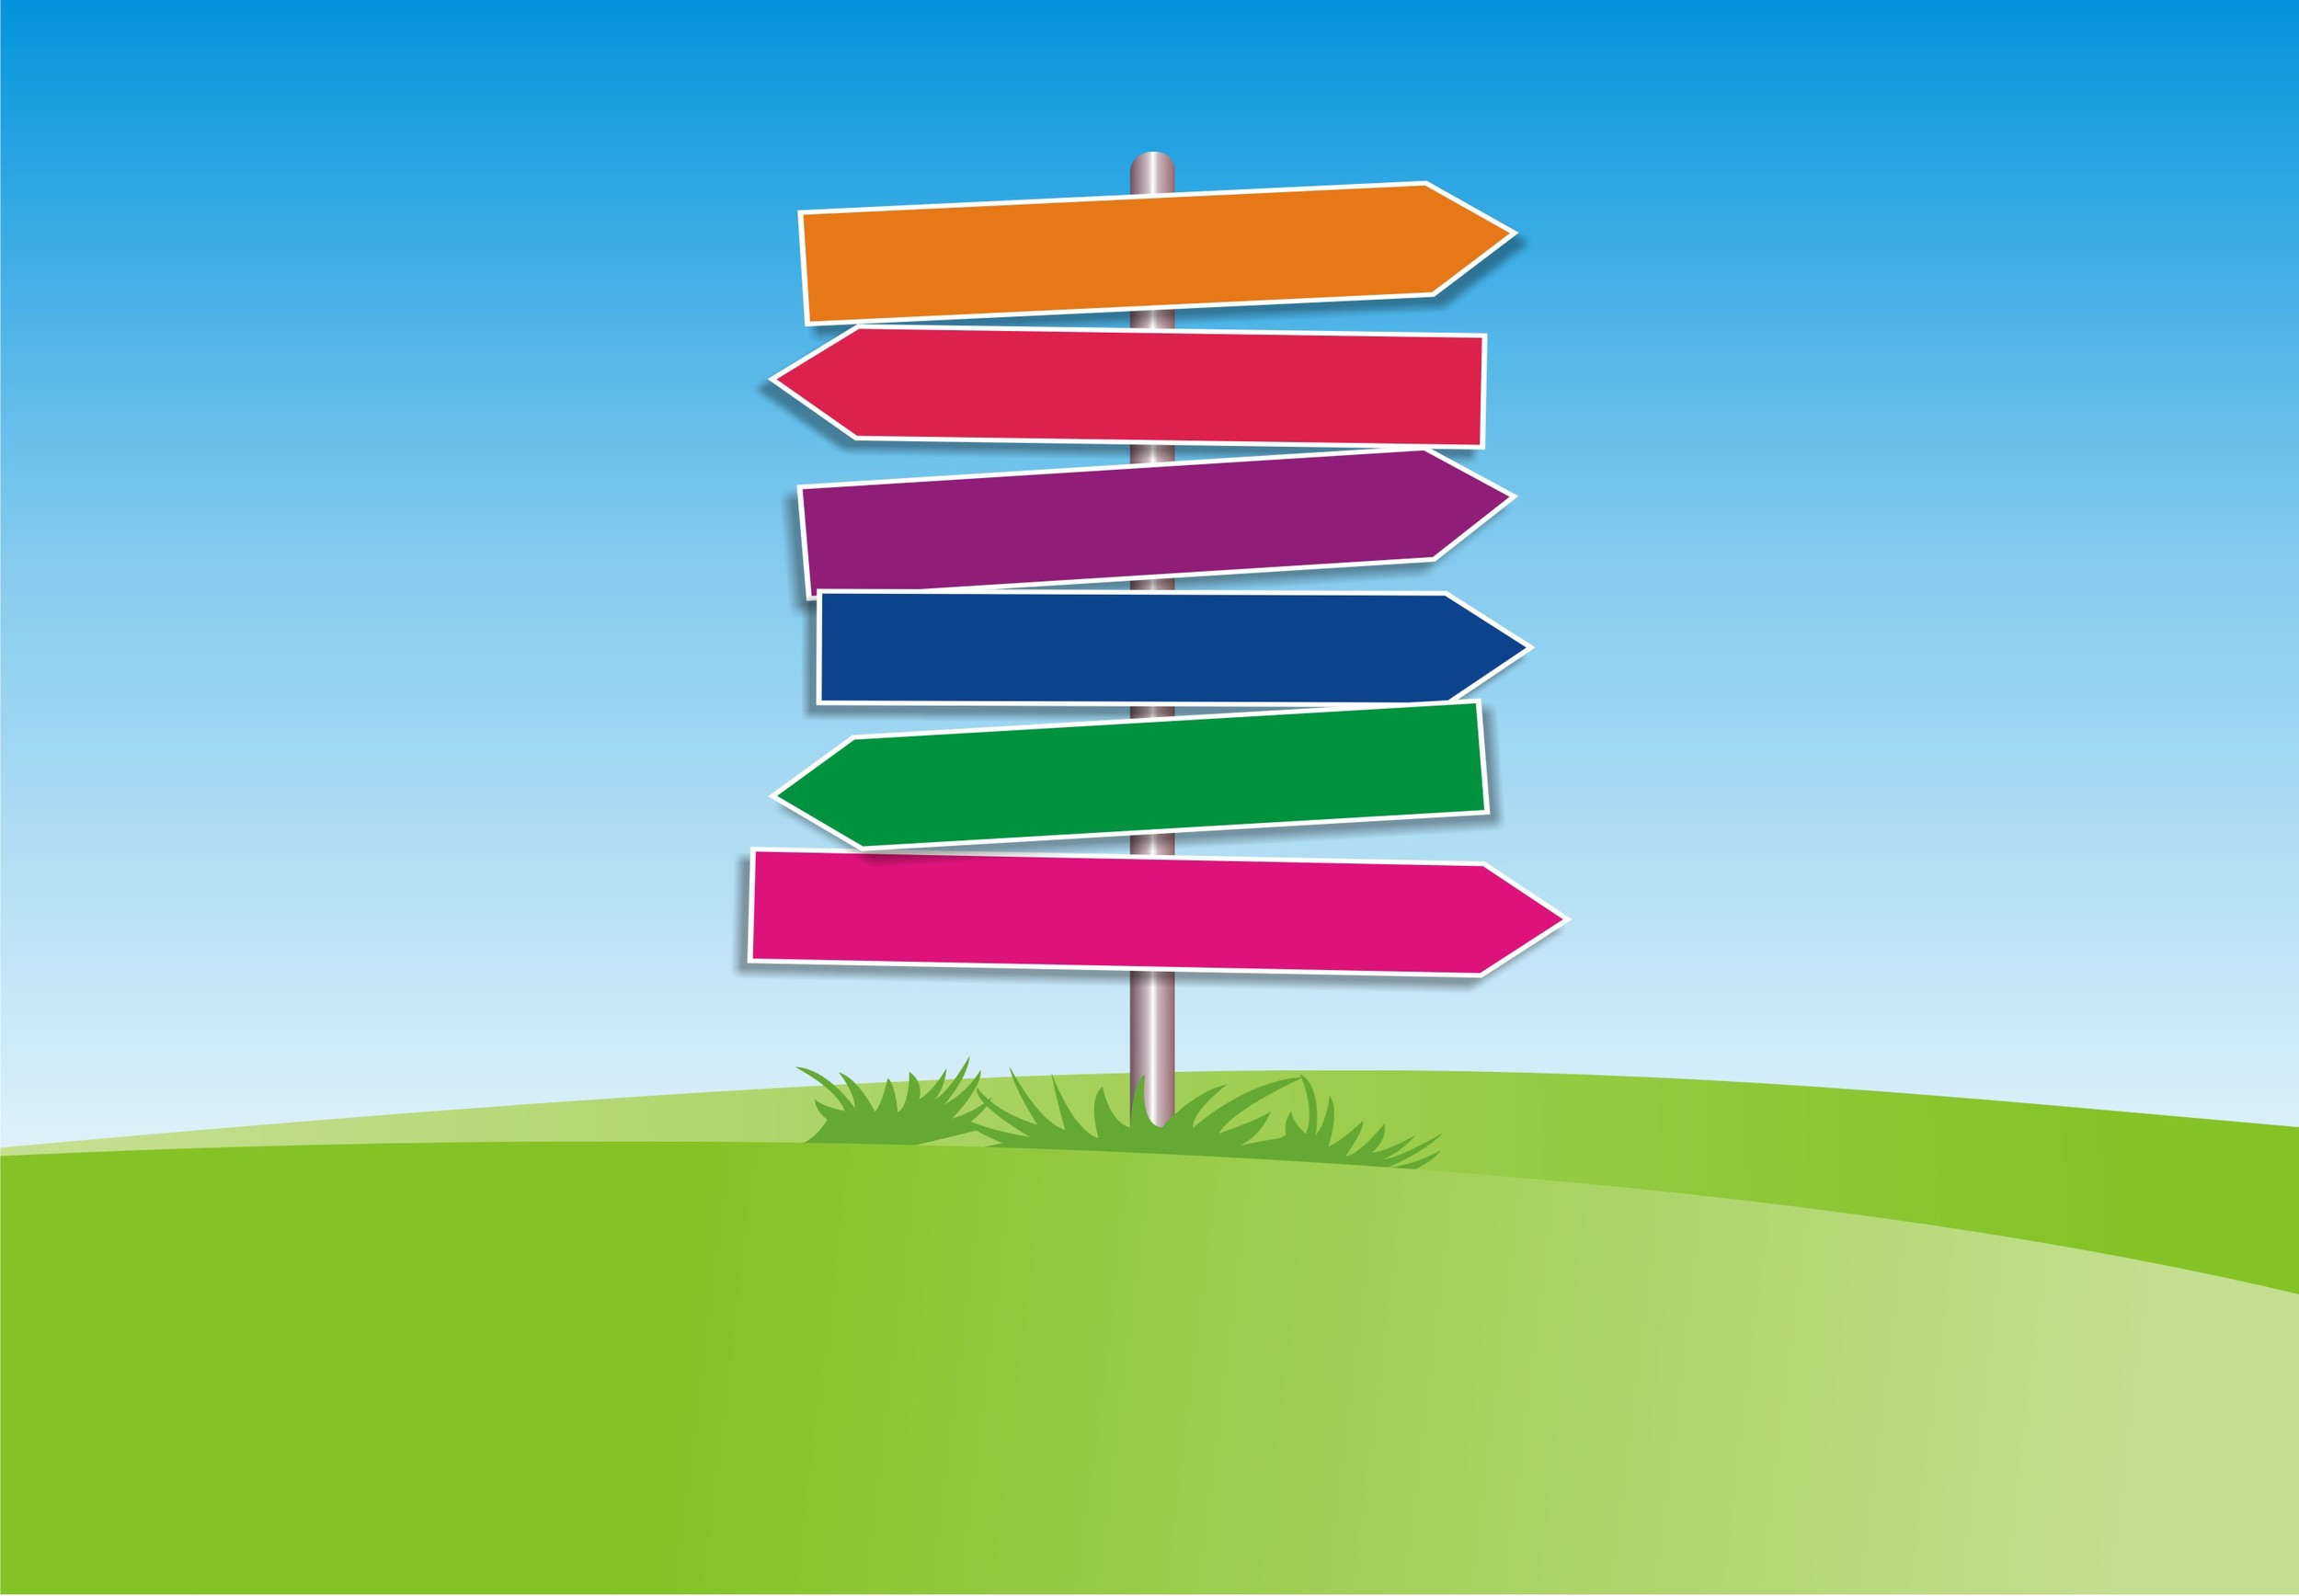 choice-multicolored directional signs.jpg